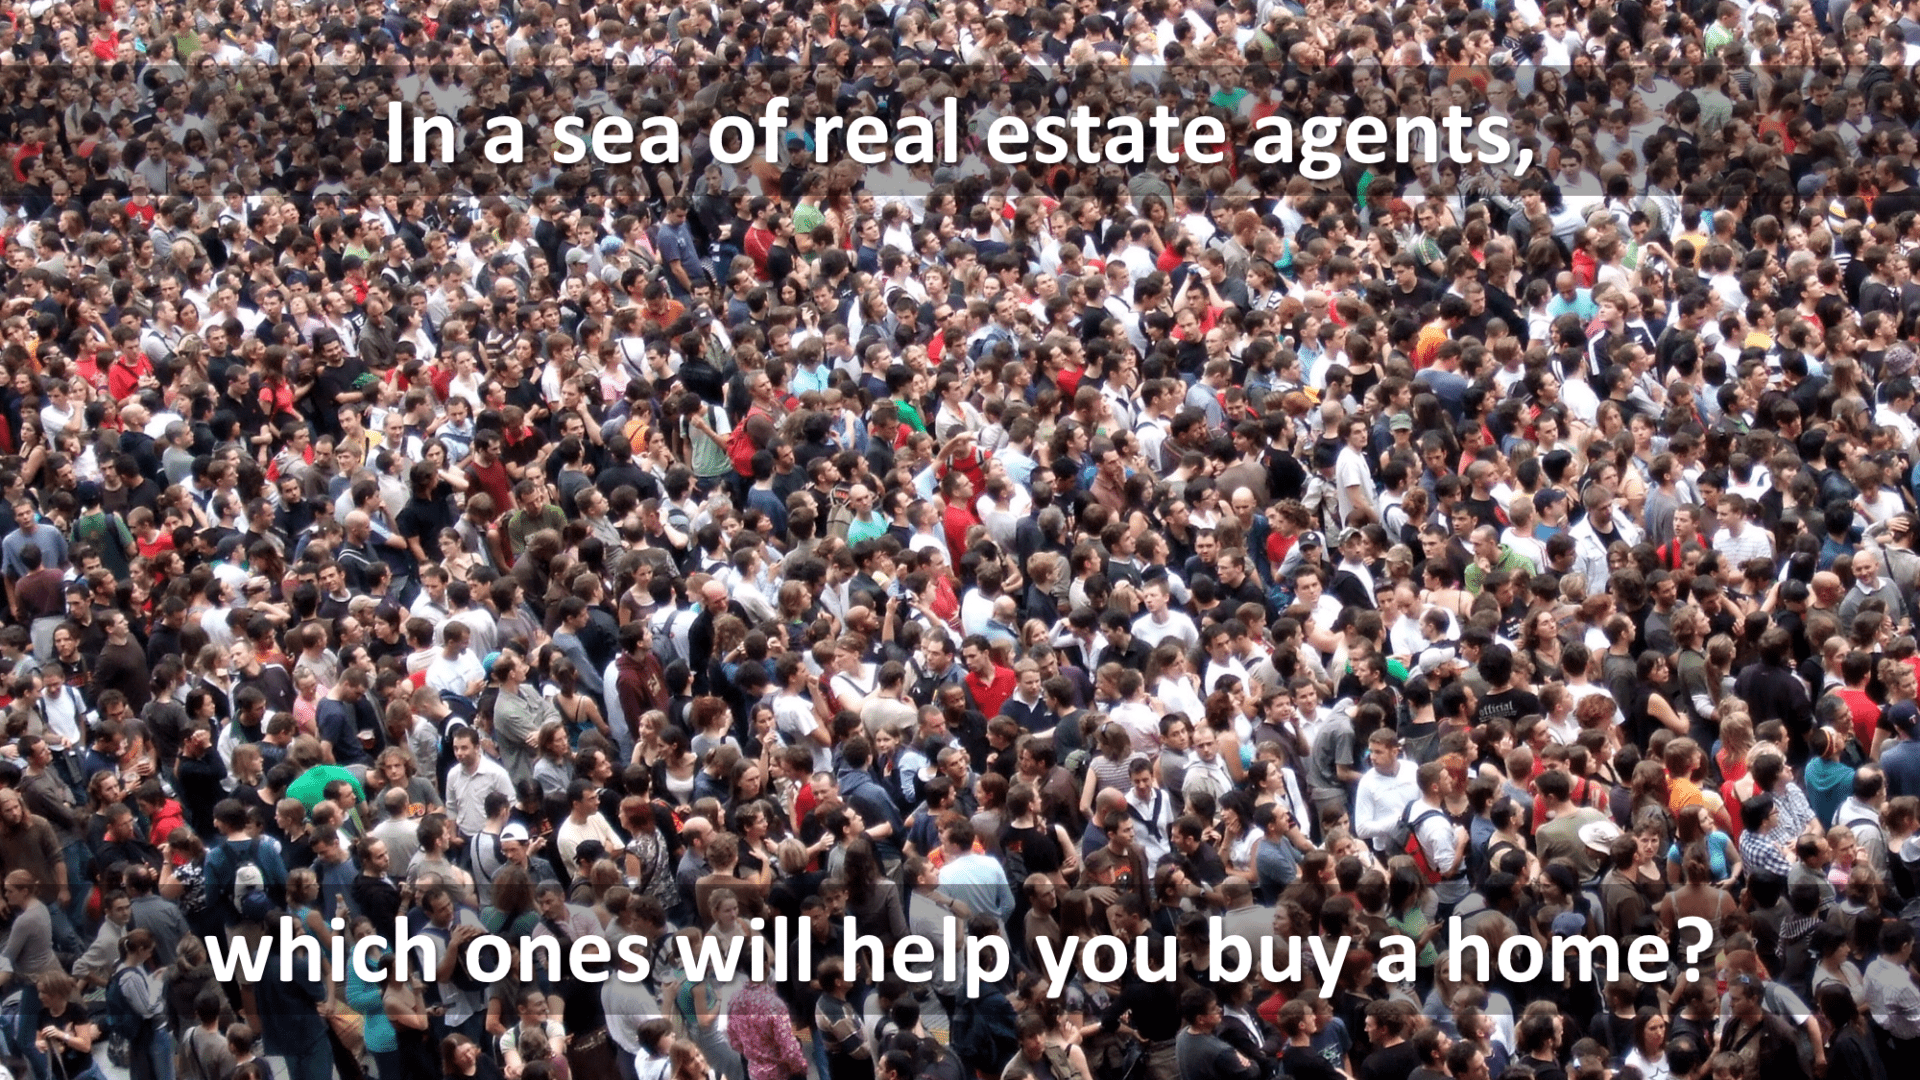 Sea of real estate agents